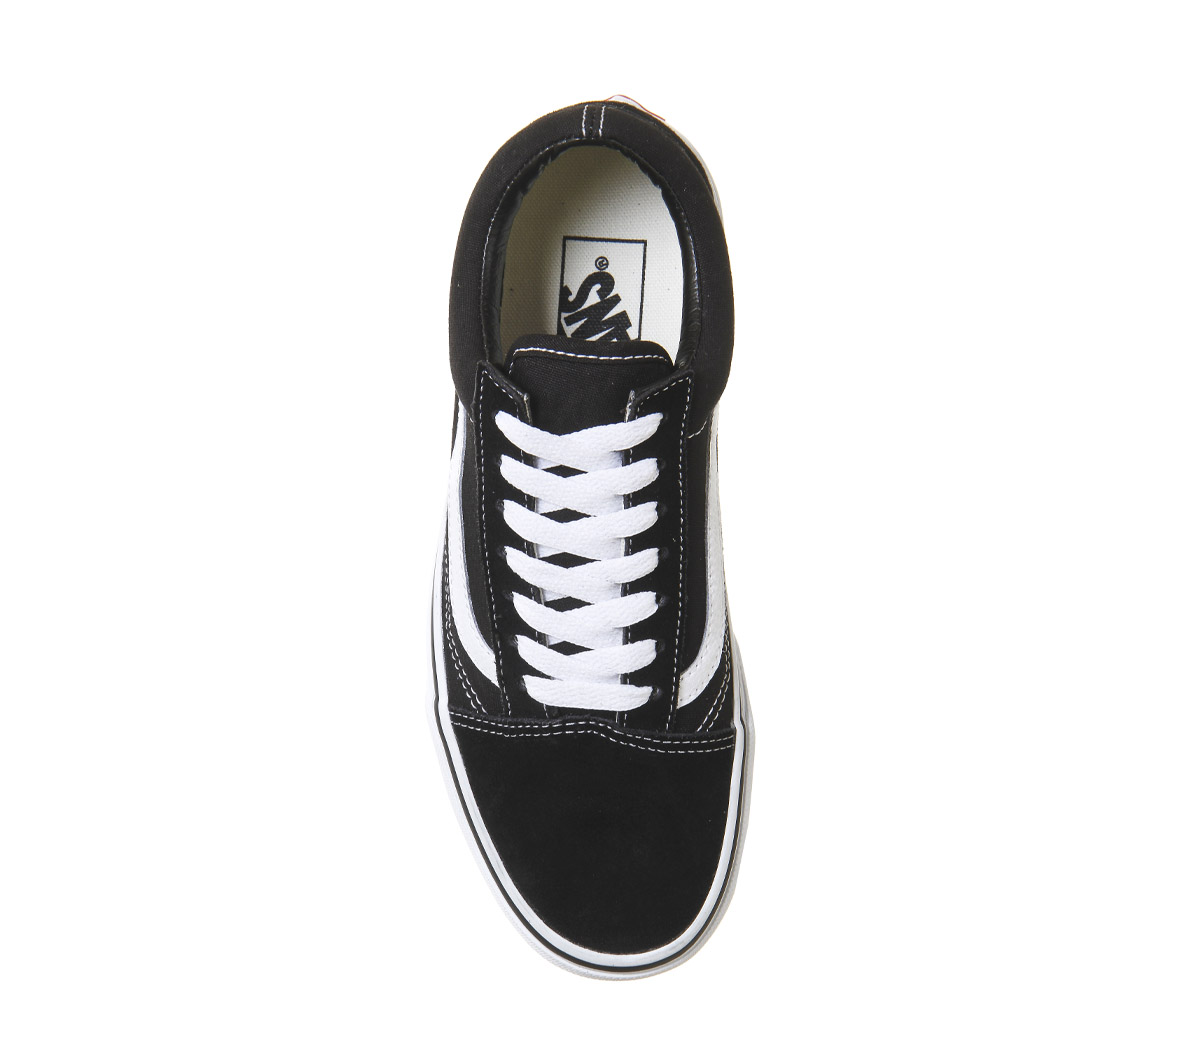 Trainers Herren Vans Old Skool Trainers  BLACK Trainers Schuhes 4e589a